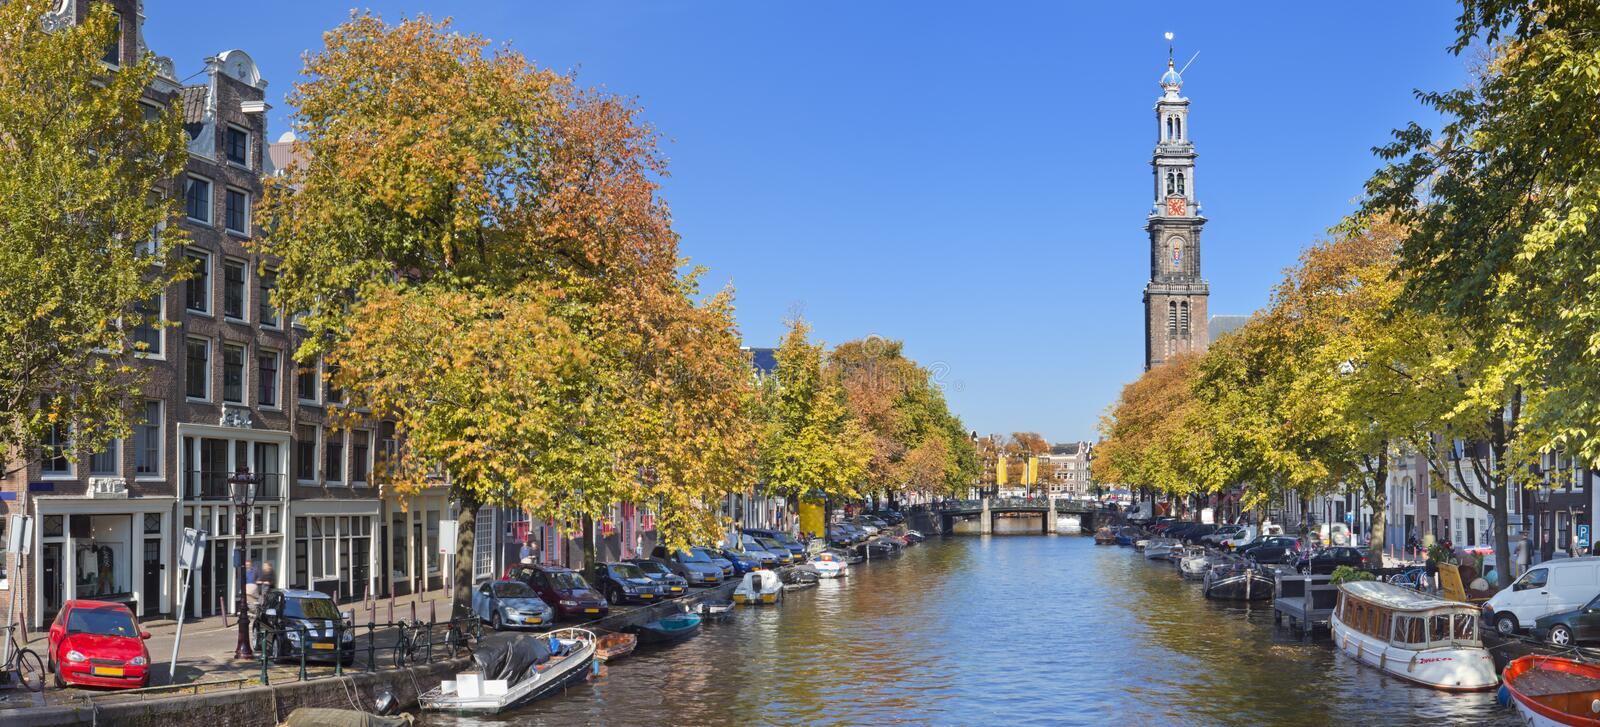 Canal in Amsterdam, The Netherlands in autumn. A canal with the Westerkerk tower in the city of Amsterdam, The Netherlands. Photographed on a beautiful day in royalty free stock photos